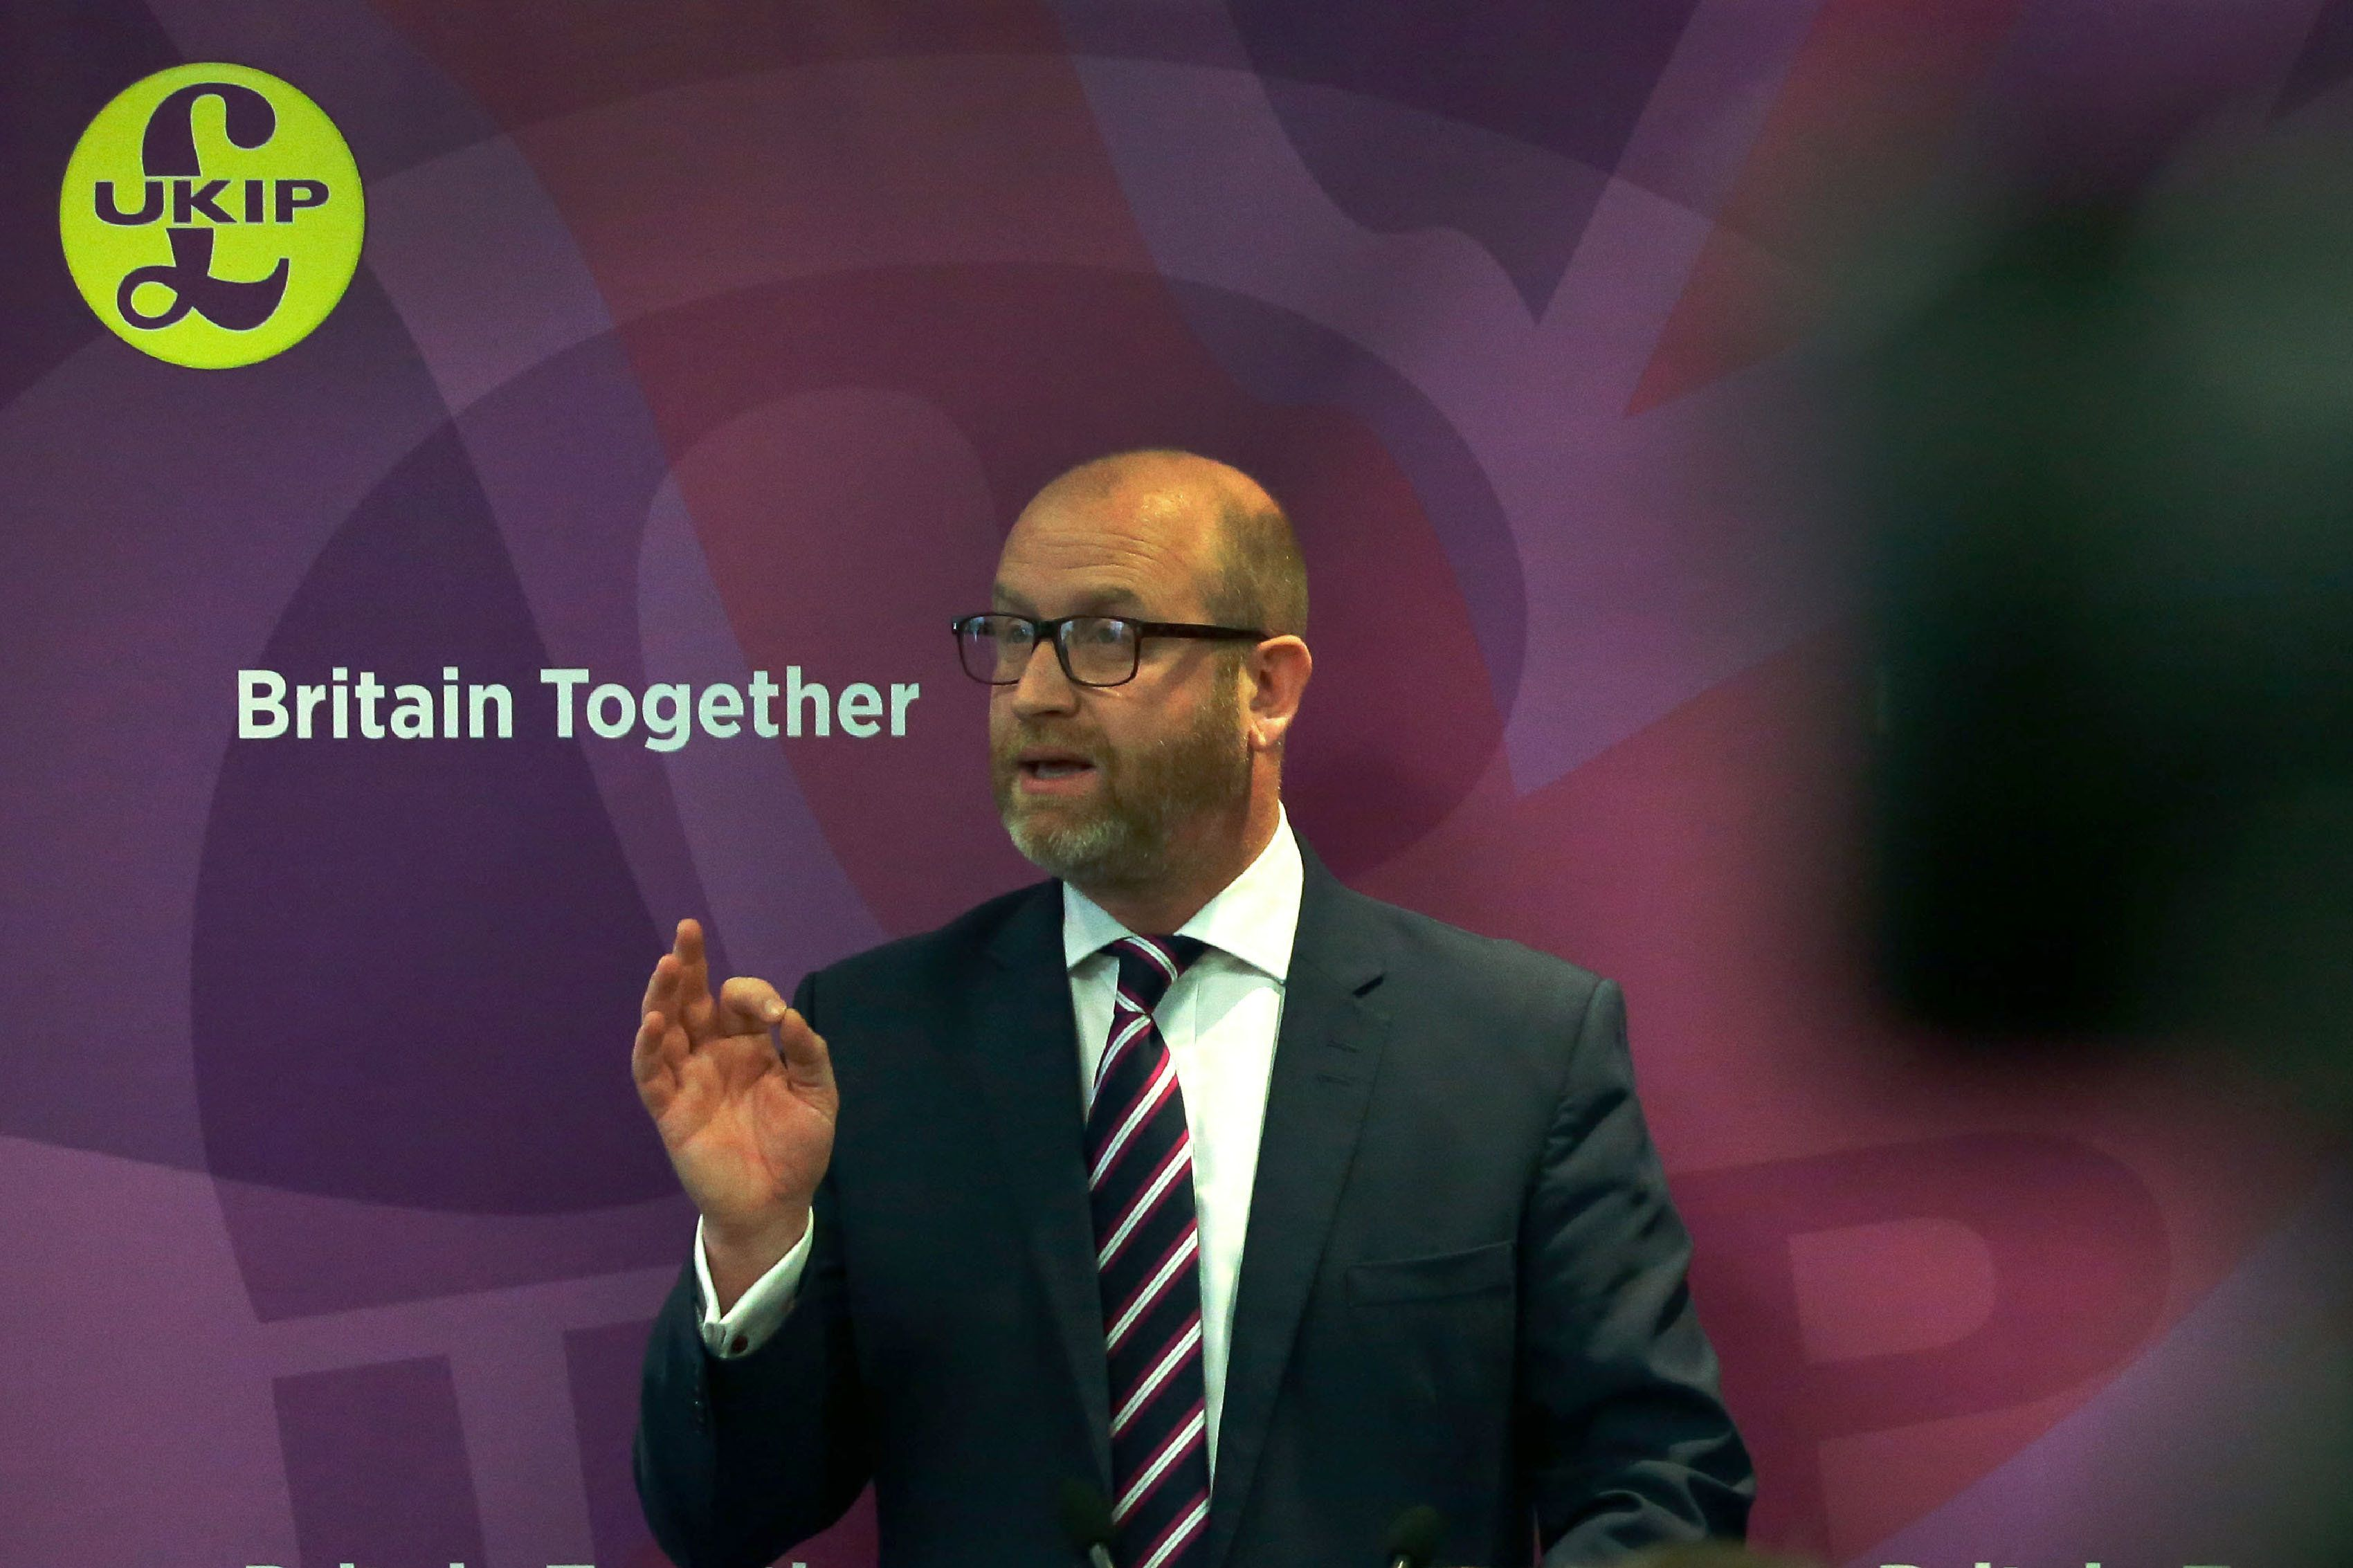 Ukip leader Paul Nuttall has warned that terrorist attacks like the Manchester bombing couldbecome...